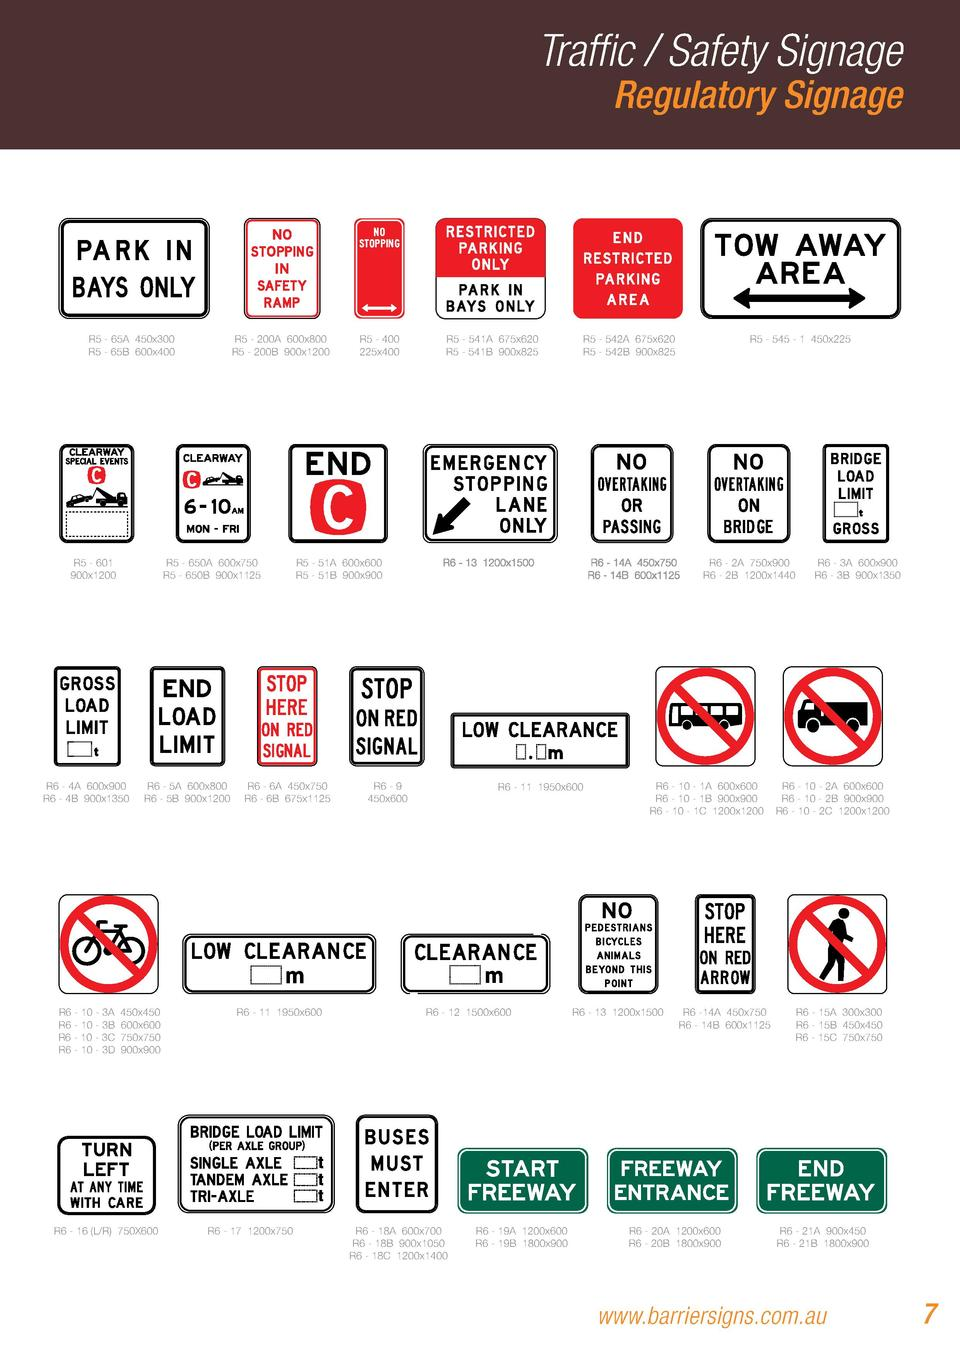 Traffic   Safety Signage  Regulatory Signage  R5 - 65A 450x300 R5 - 65B 600x400  R5 - 601 900x1200  R5 - 650A 600x750 R5 -...